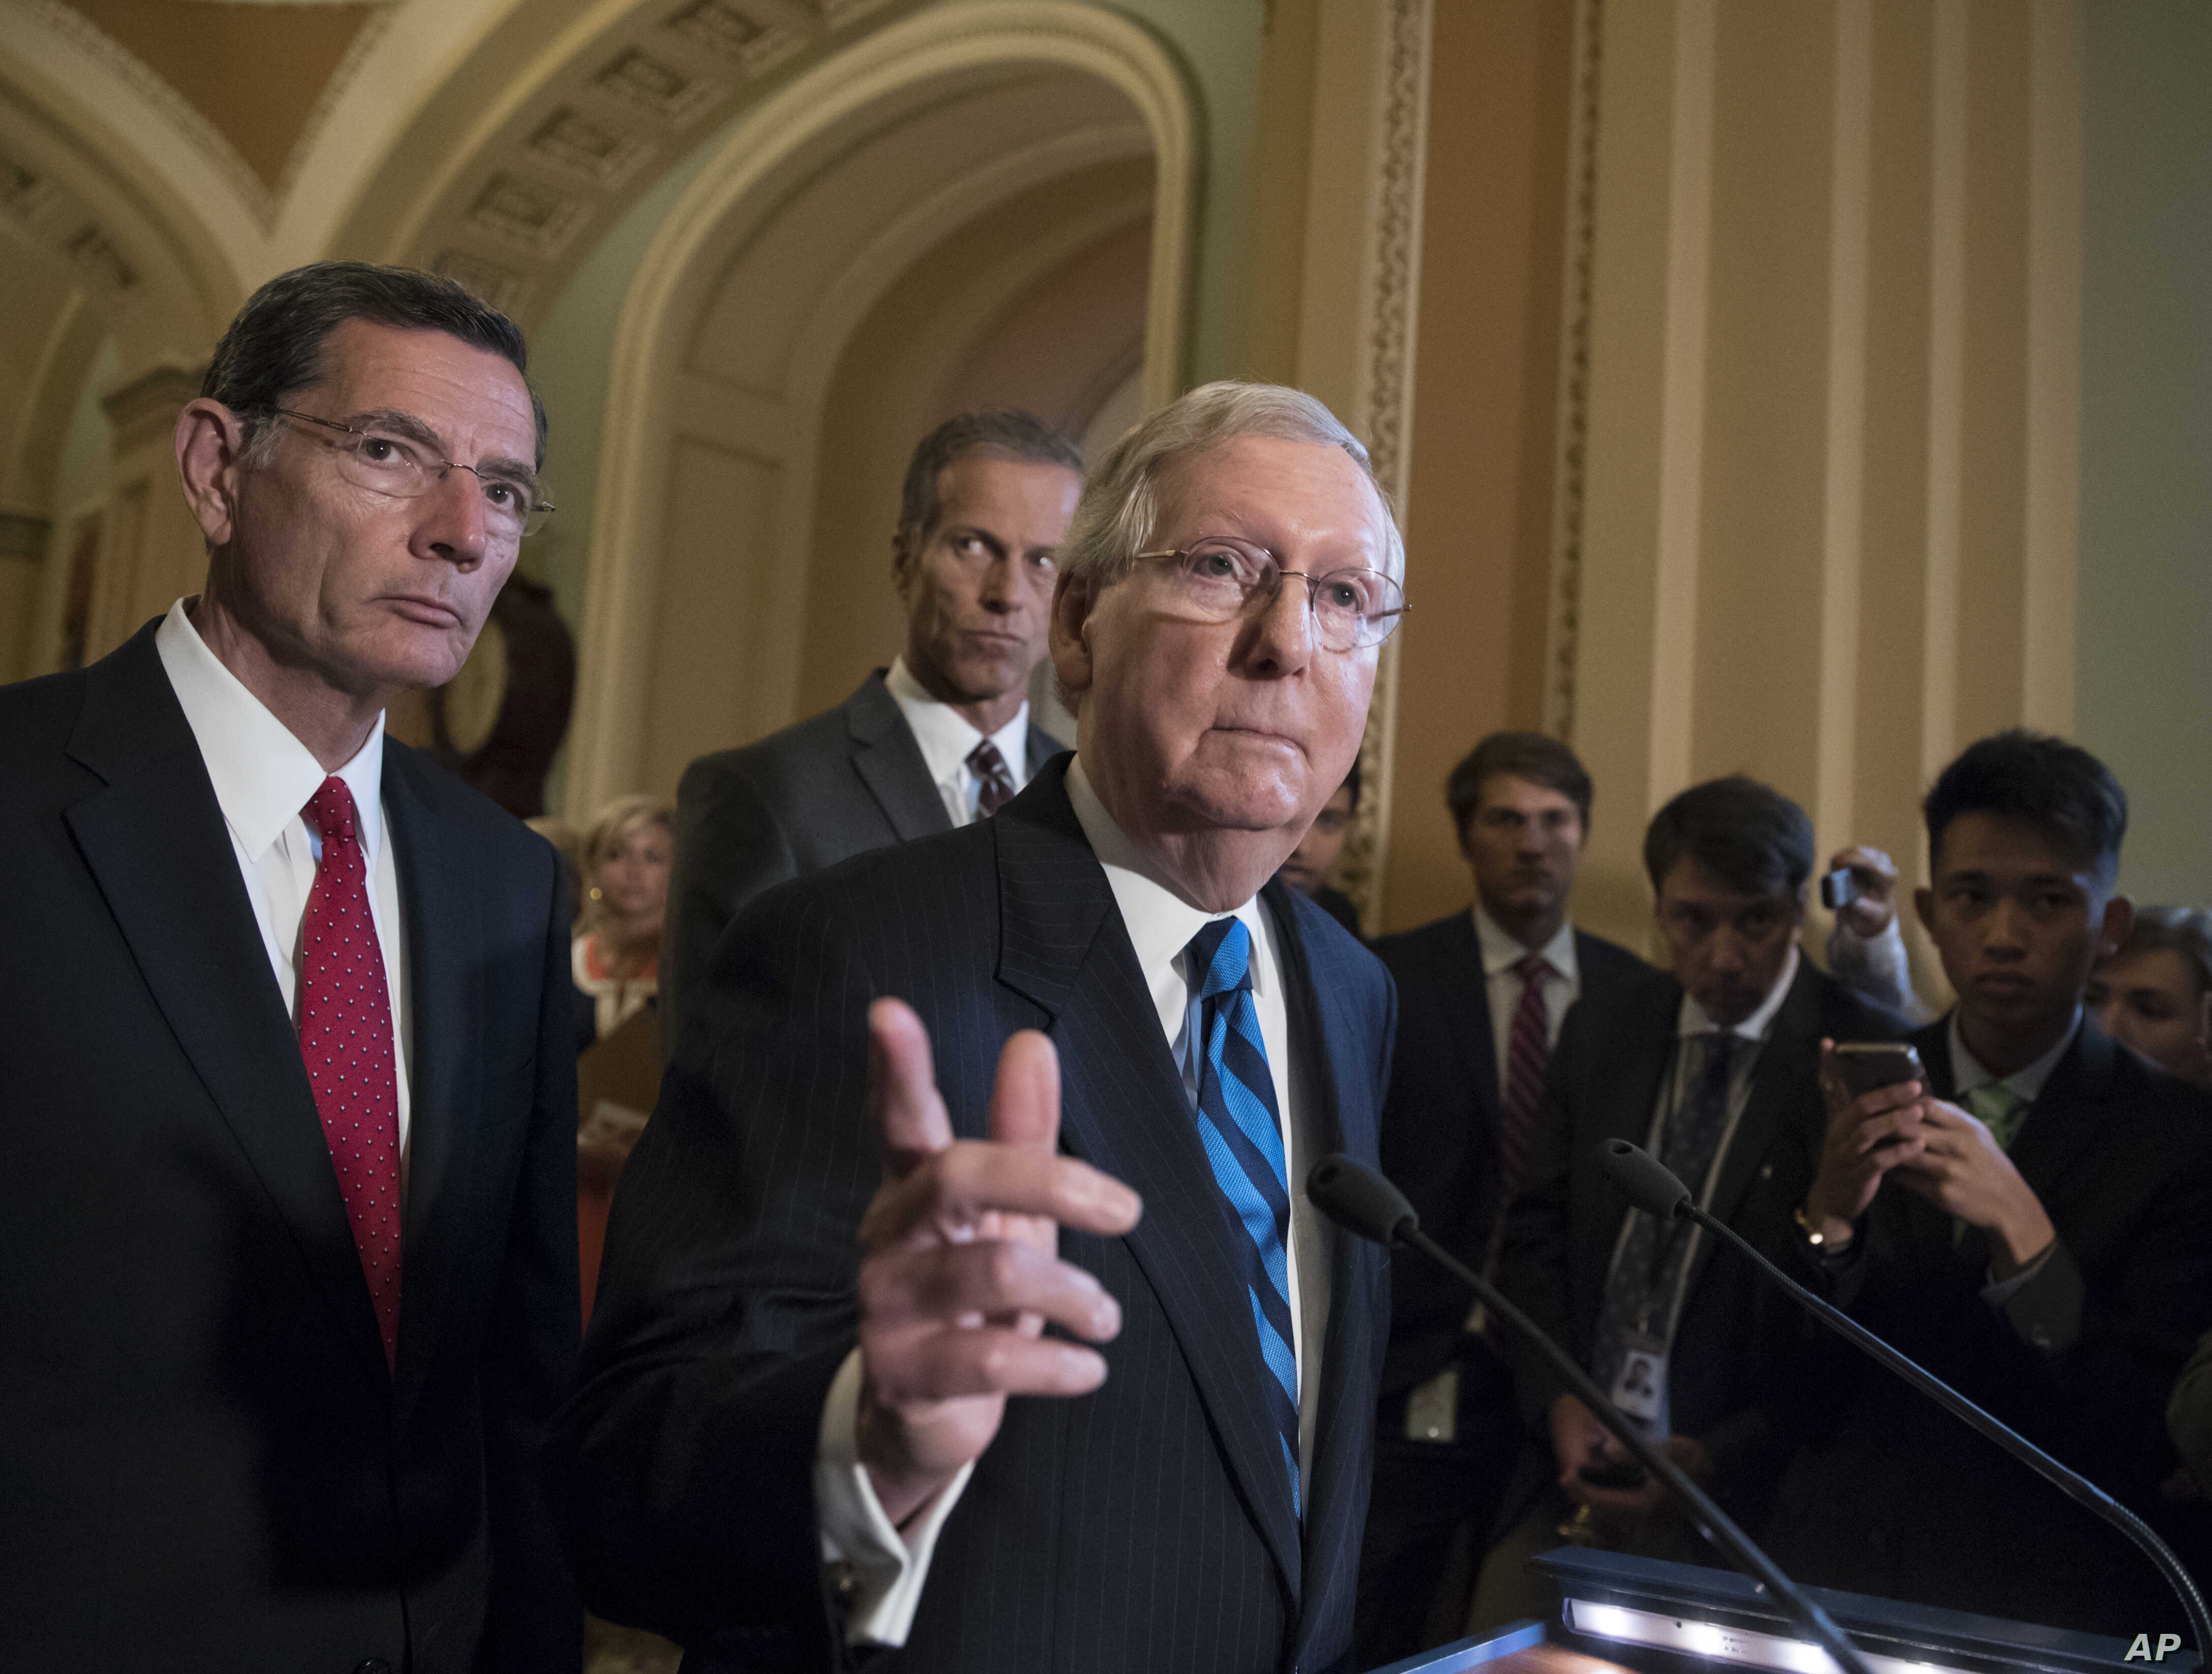 Senate Majority Leader Mitch McConnell of Ky., joined by, from left, Sen. John Barrasso, R-Wyo., and Sen. John Thune, R-S.D., meets with reporters July 11, 2017, on Capitol Hill in Washington.